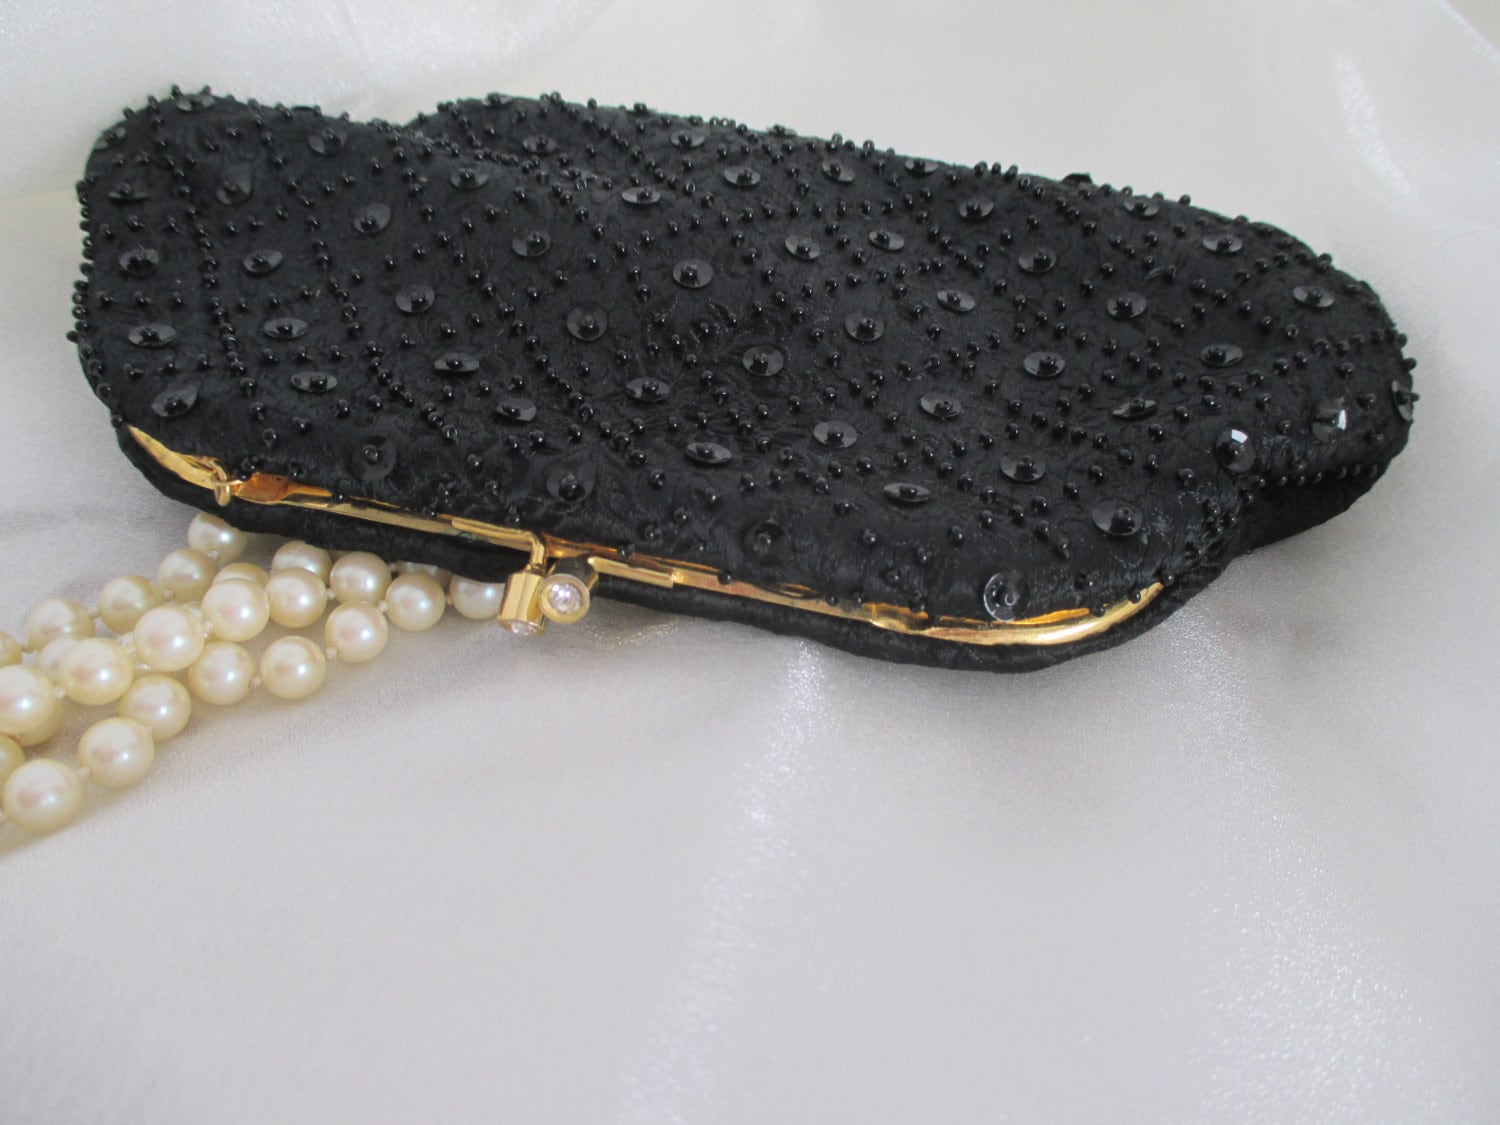 Vintage Evening Clutch, Black Beaded Purse, Black Clutch, Evening Purse,  Black Purse, Bridal Clutch, Black and White Ball